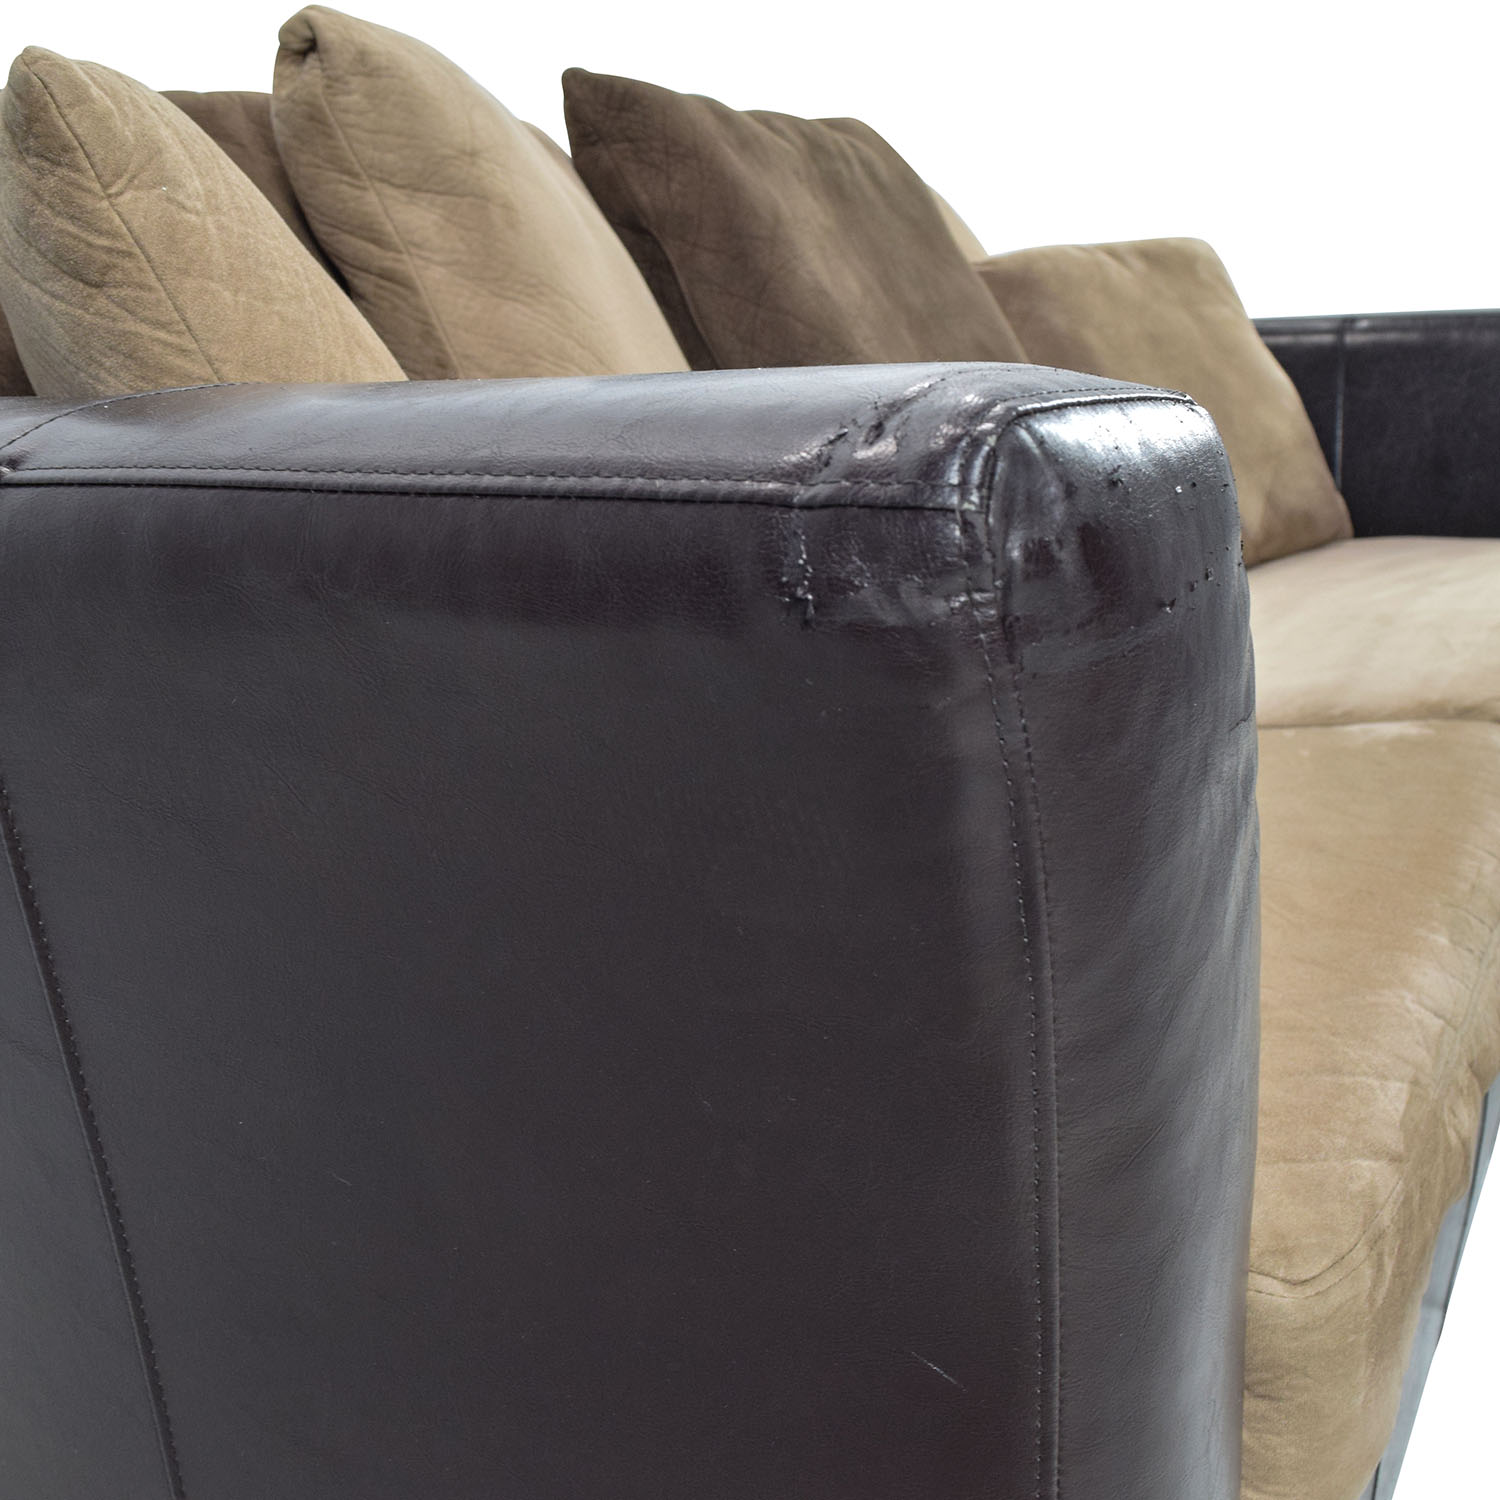 jennifer convertible sofas on sale protect new sofa from cat 81 off convertibles